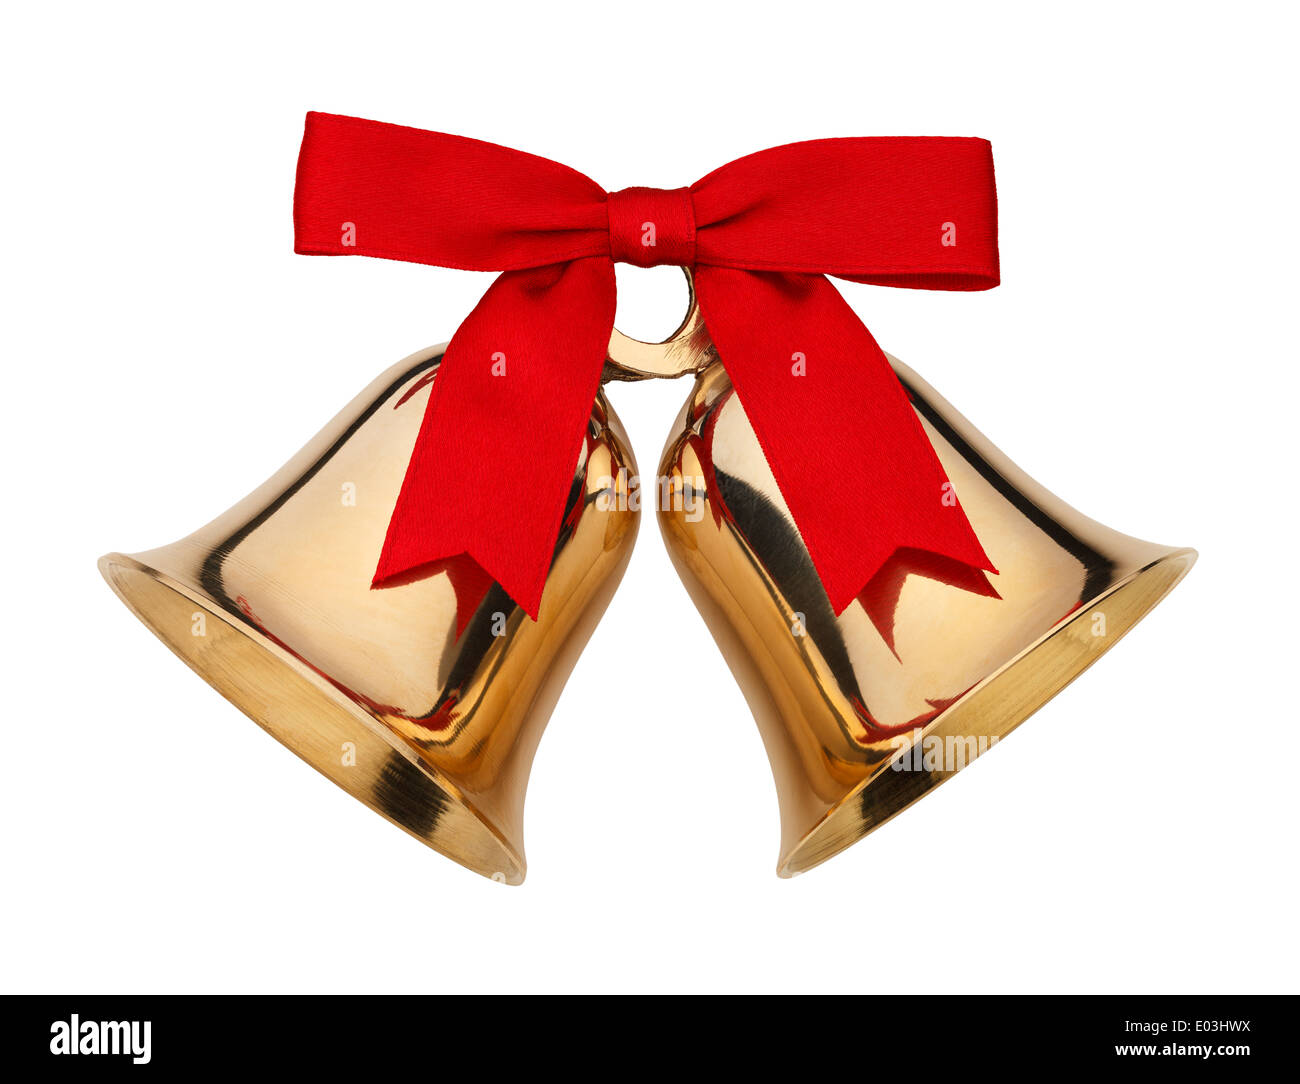 Gold Bells With Red Ribbon Bow Isolated on White Background. - Stock Image